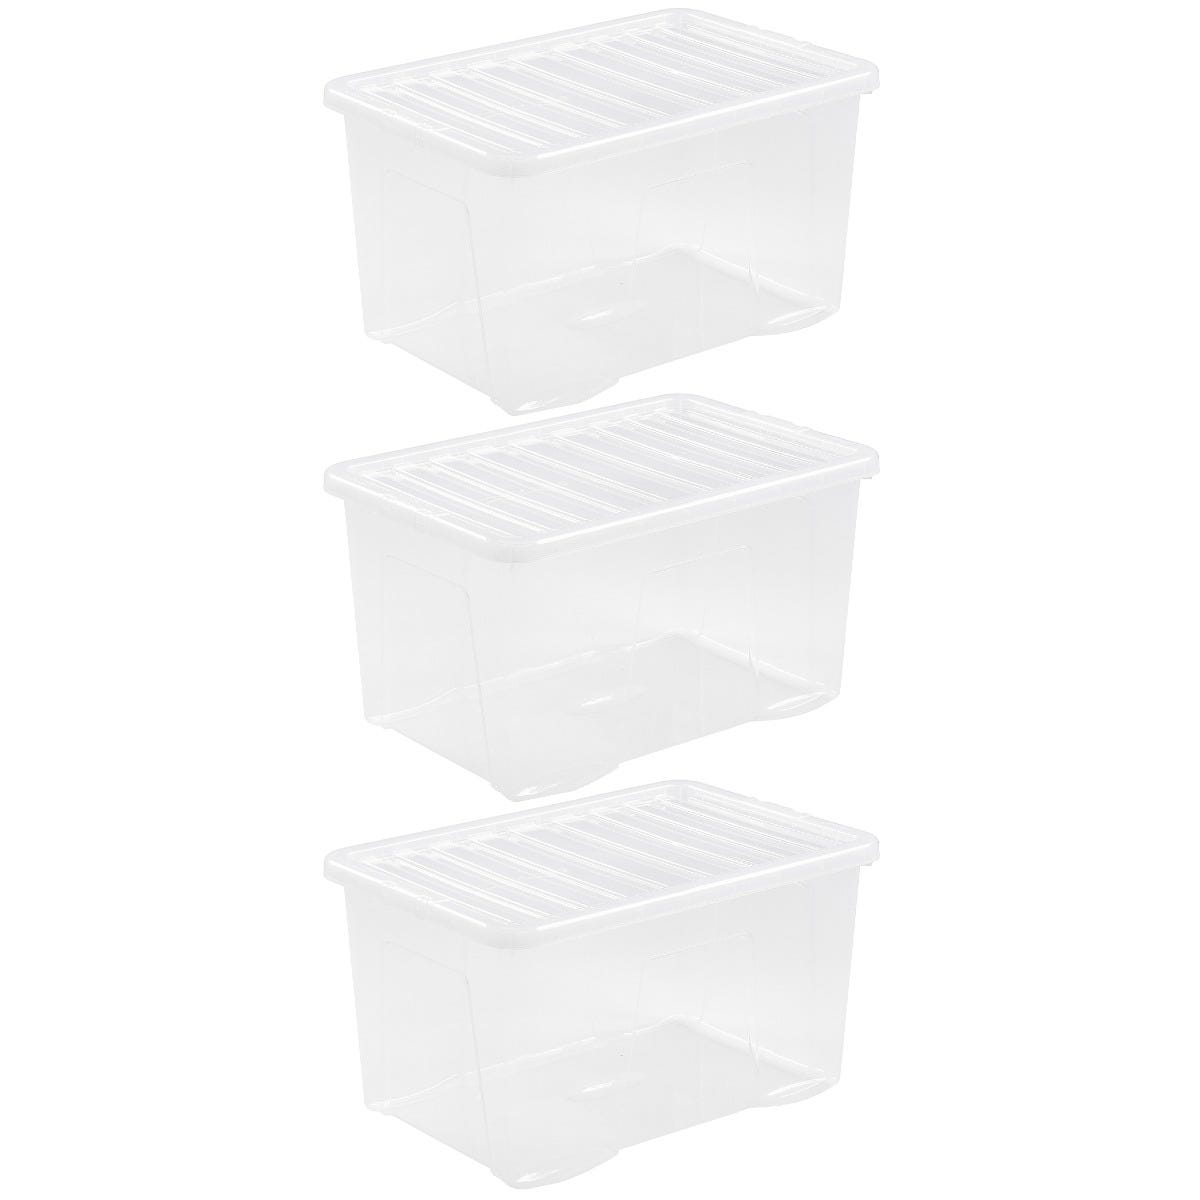 Wham Crystal Clear Storage Box with Lid 60L - Set of 3